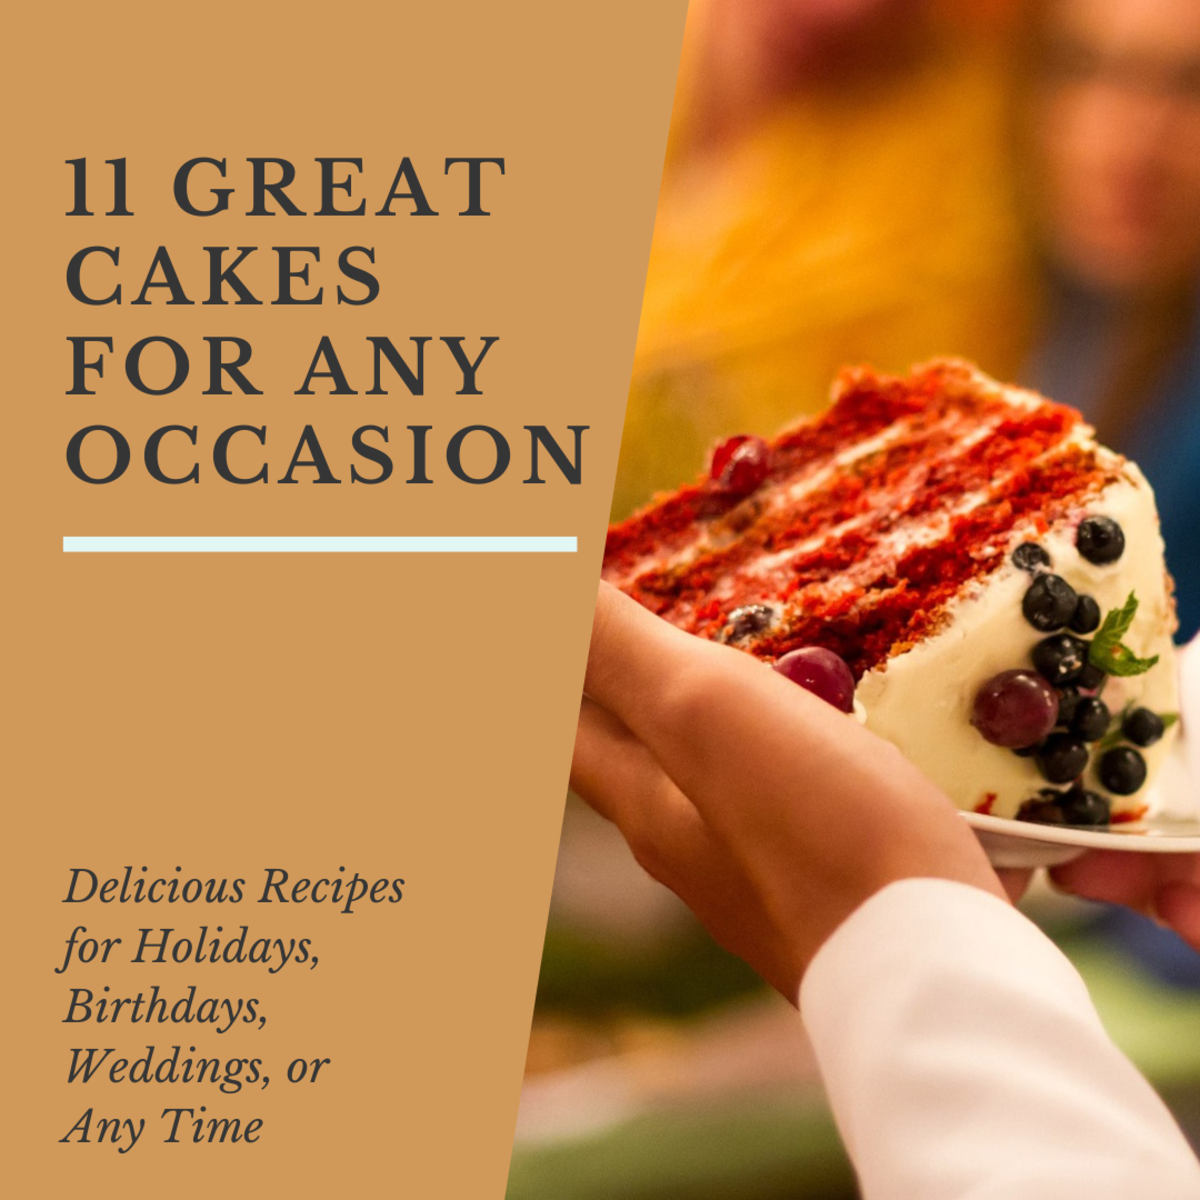 These recipes will make any occasion more festive.